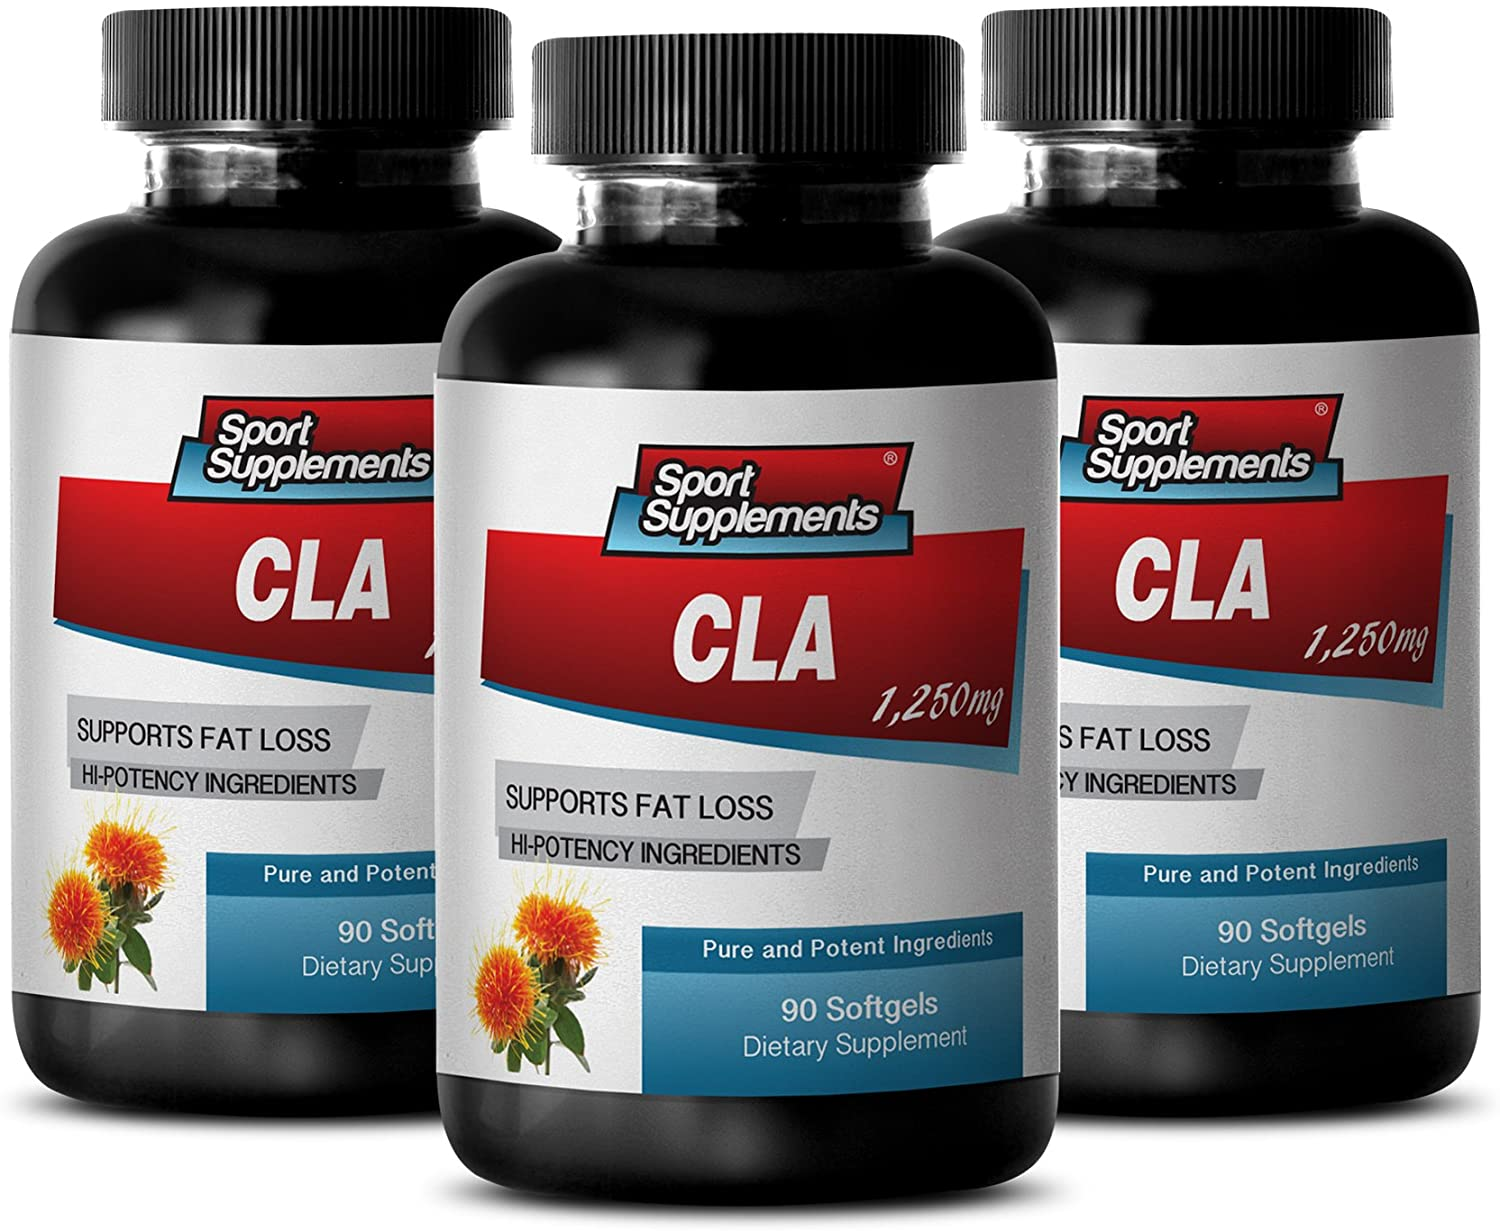 Weight Loss Items - CLA 1250 MG - CONJUGATED LINOLEIC ACIDS - Weight Loss and Fat Burner - Fatty ACIDS - cla high Potency - 3 Bottles (270 Softgels)